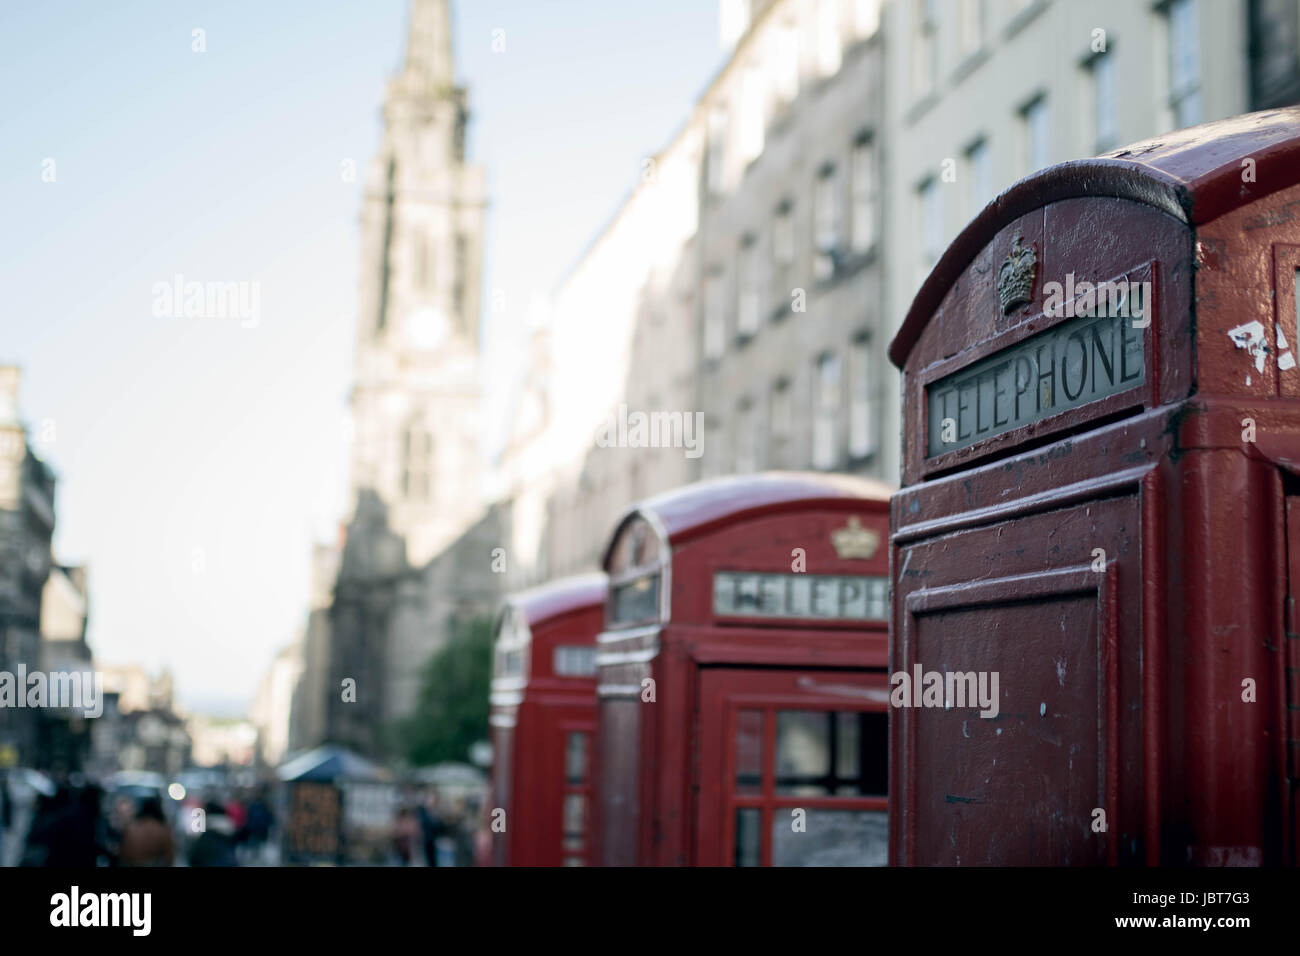 Three phone boxes in a row - Stock Image